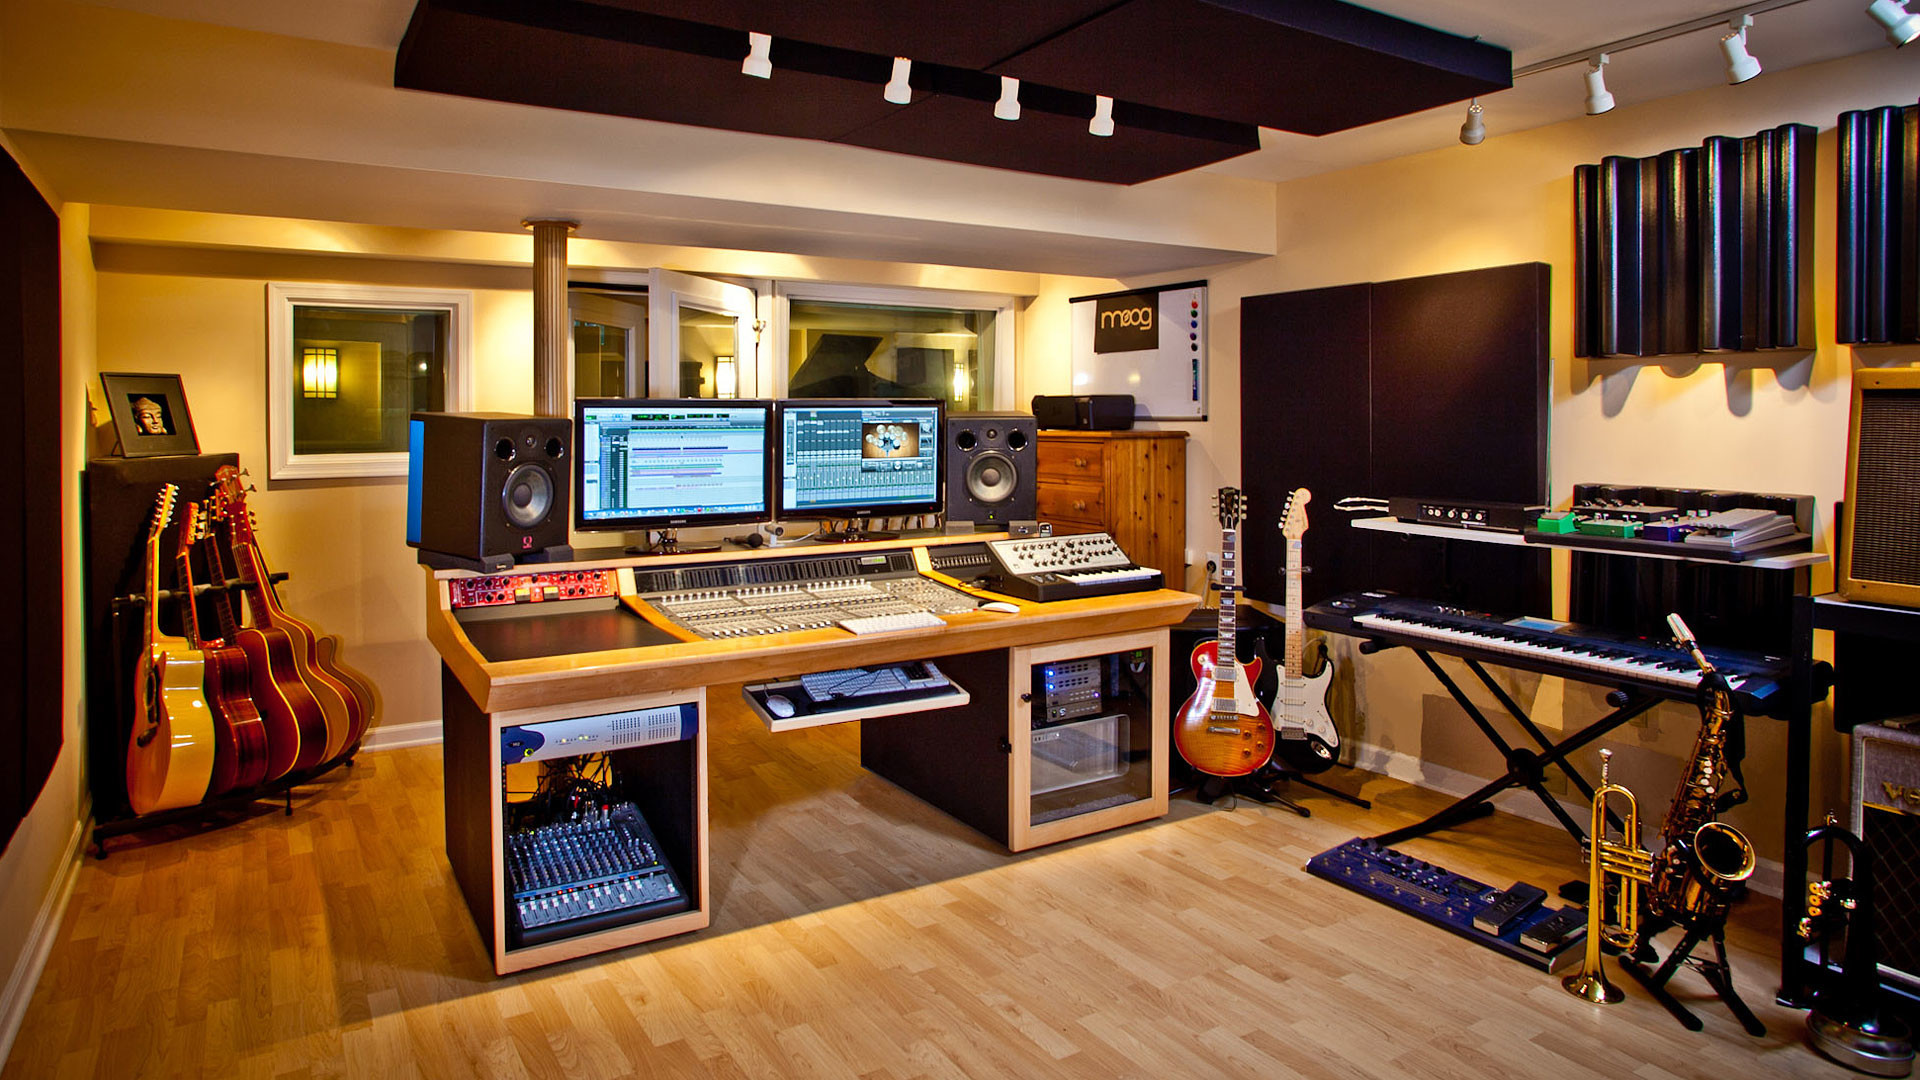 1920x1080 Recording Studio Wallpaper The recording studio